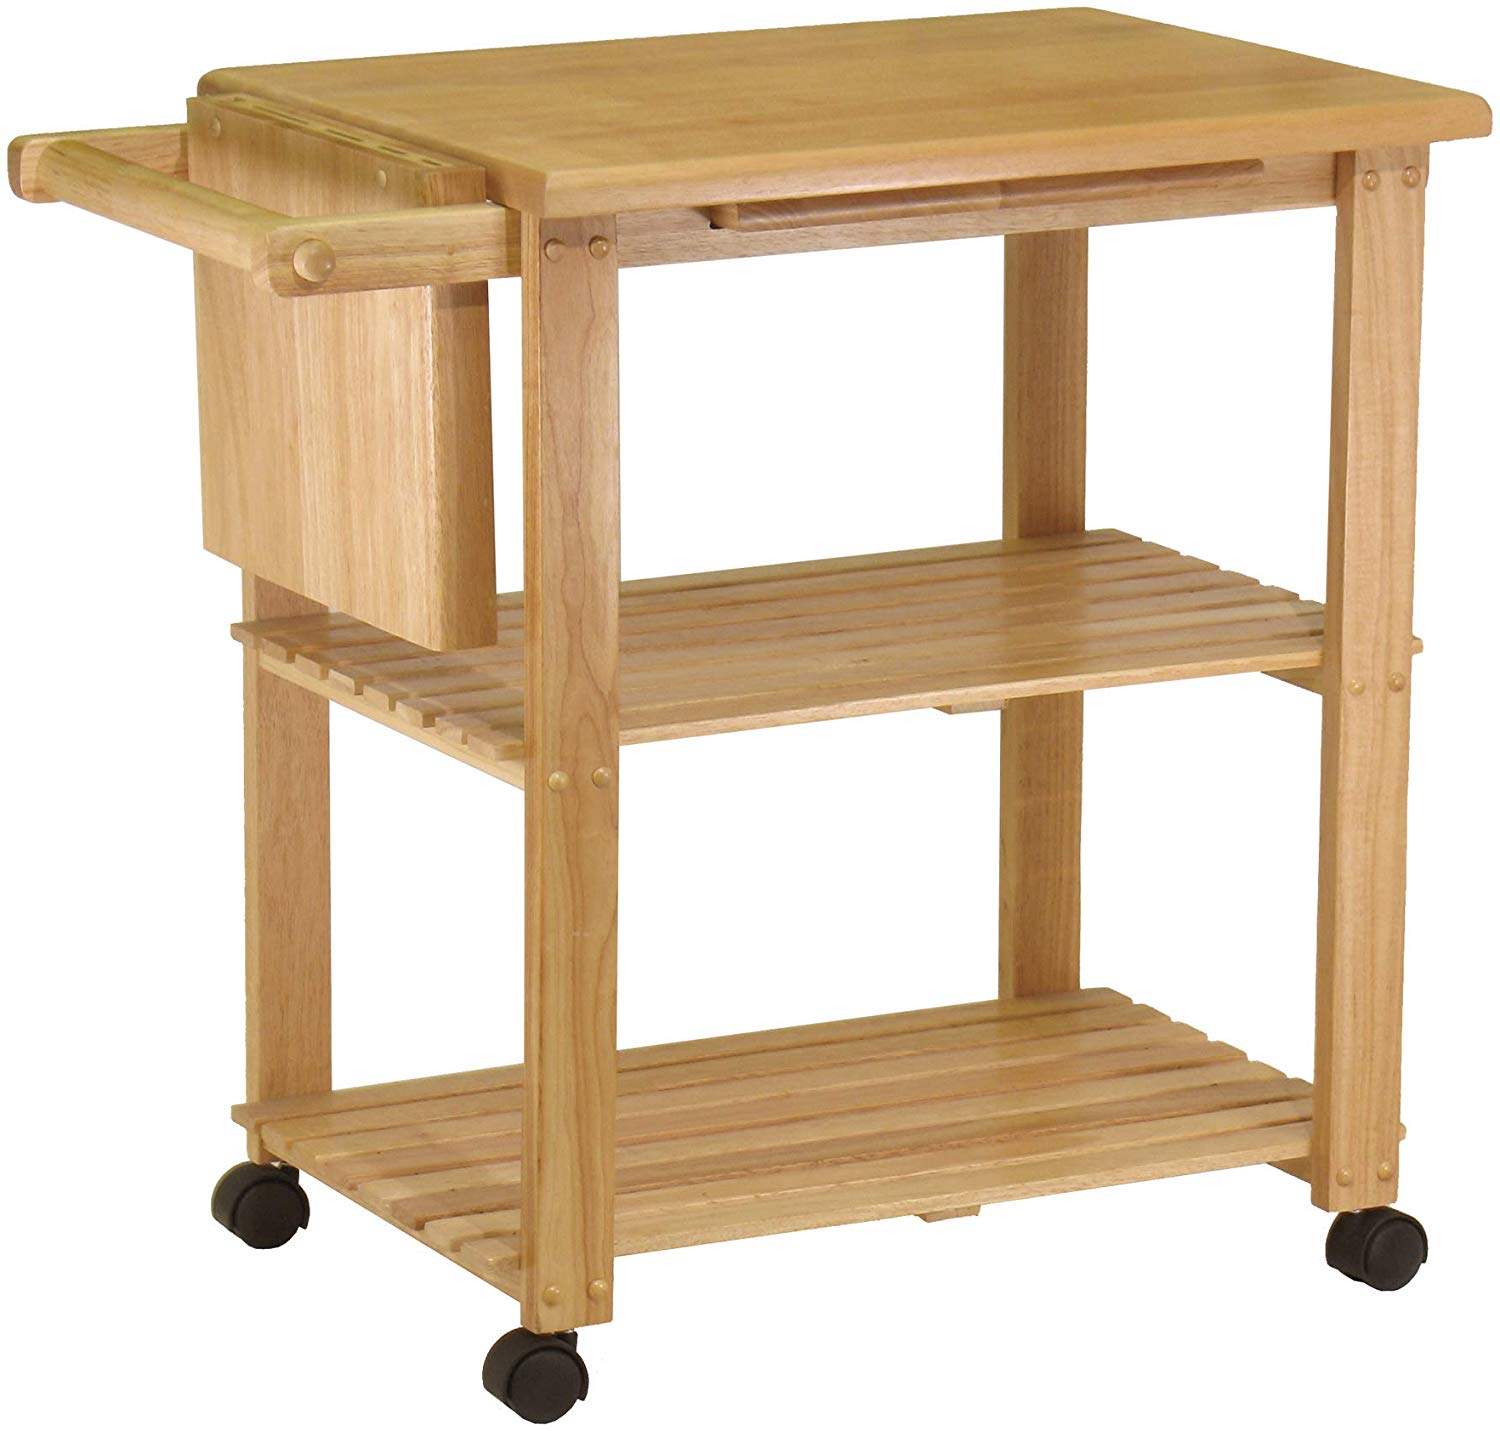 Winsome wood natural utility cart